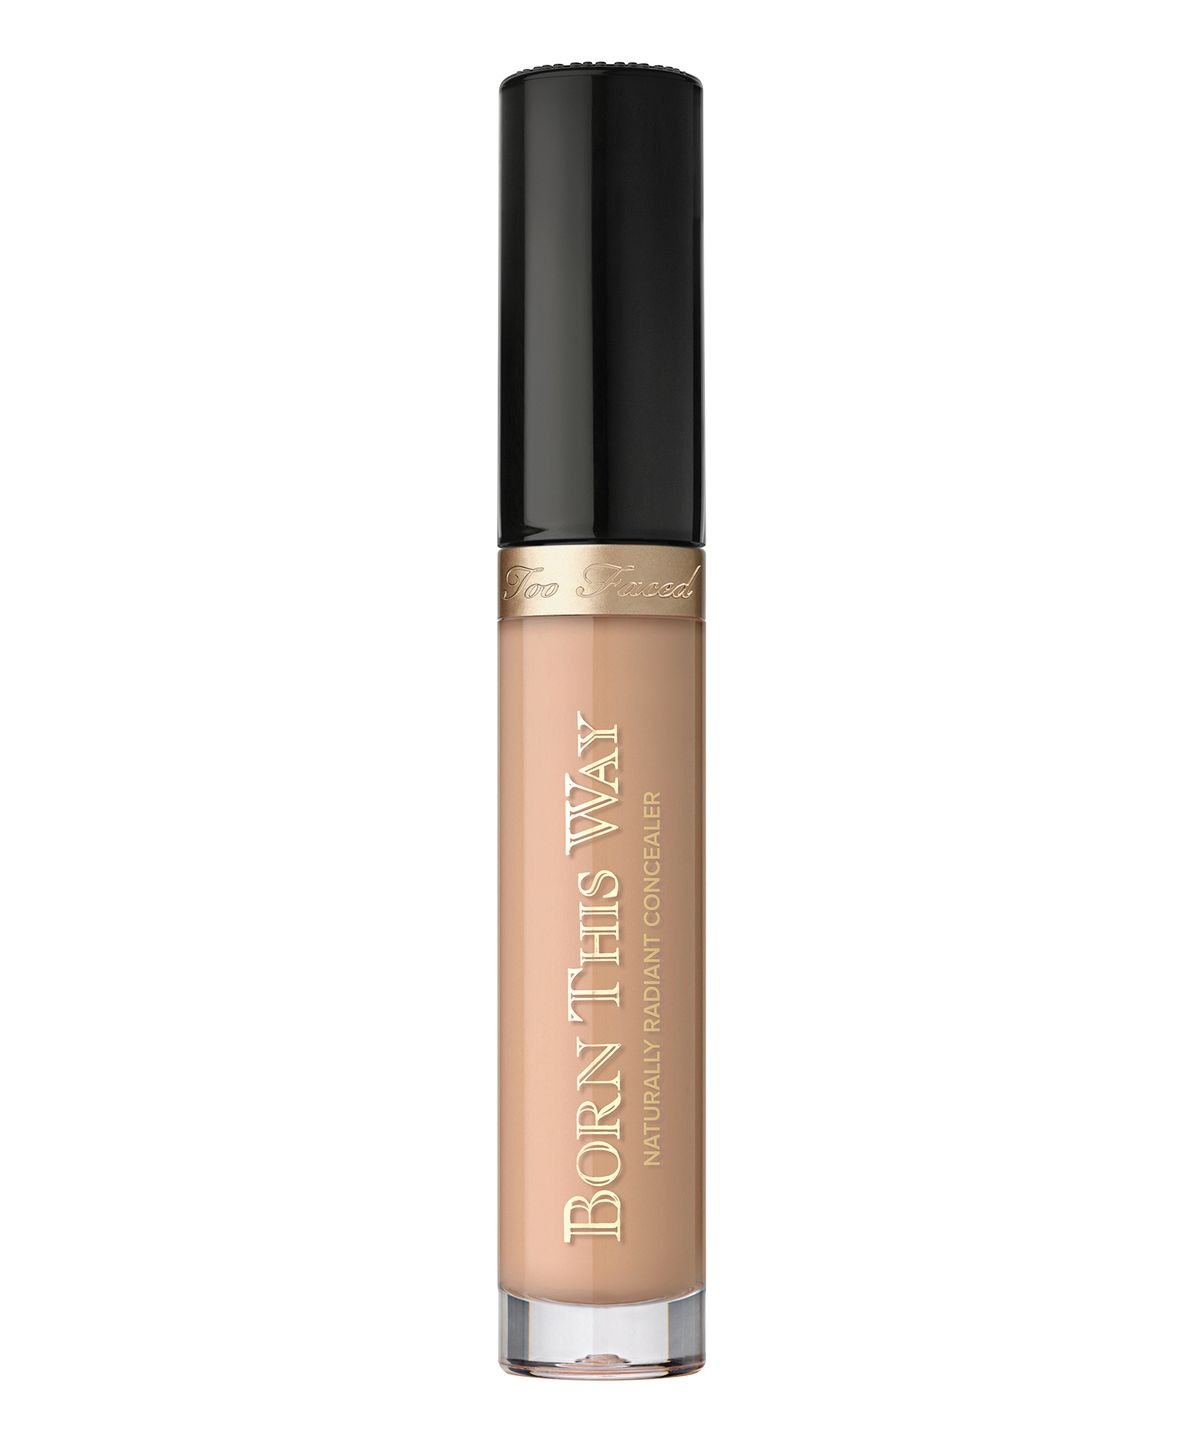 Too Faced Born This Way Concealer - Light Nude -